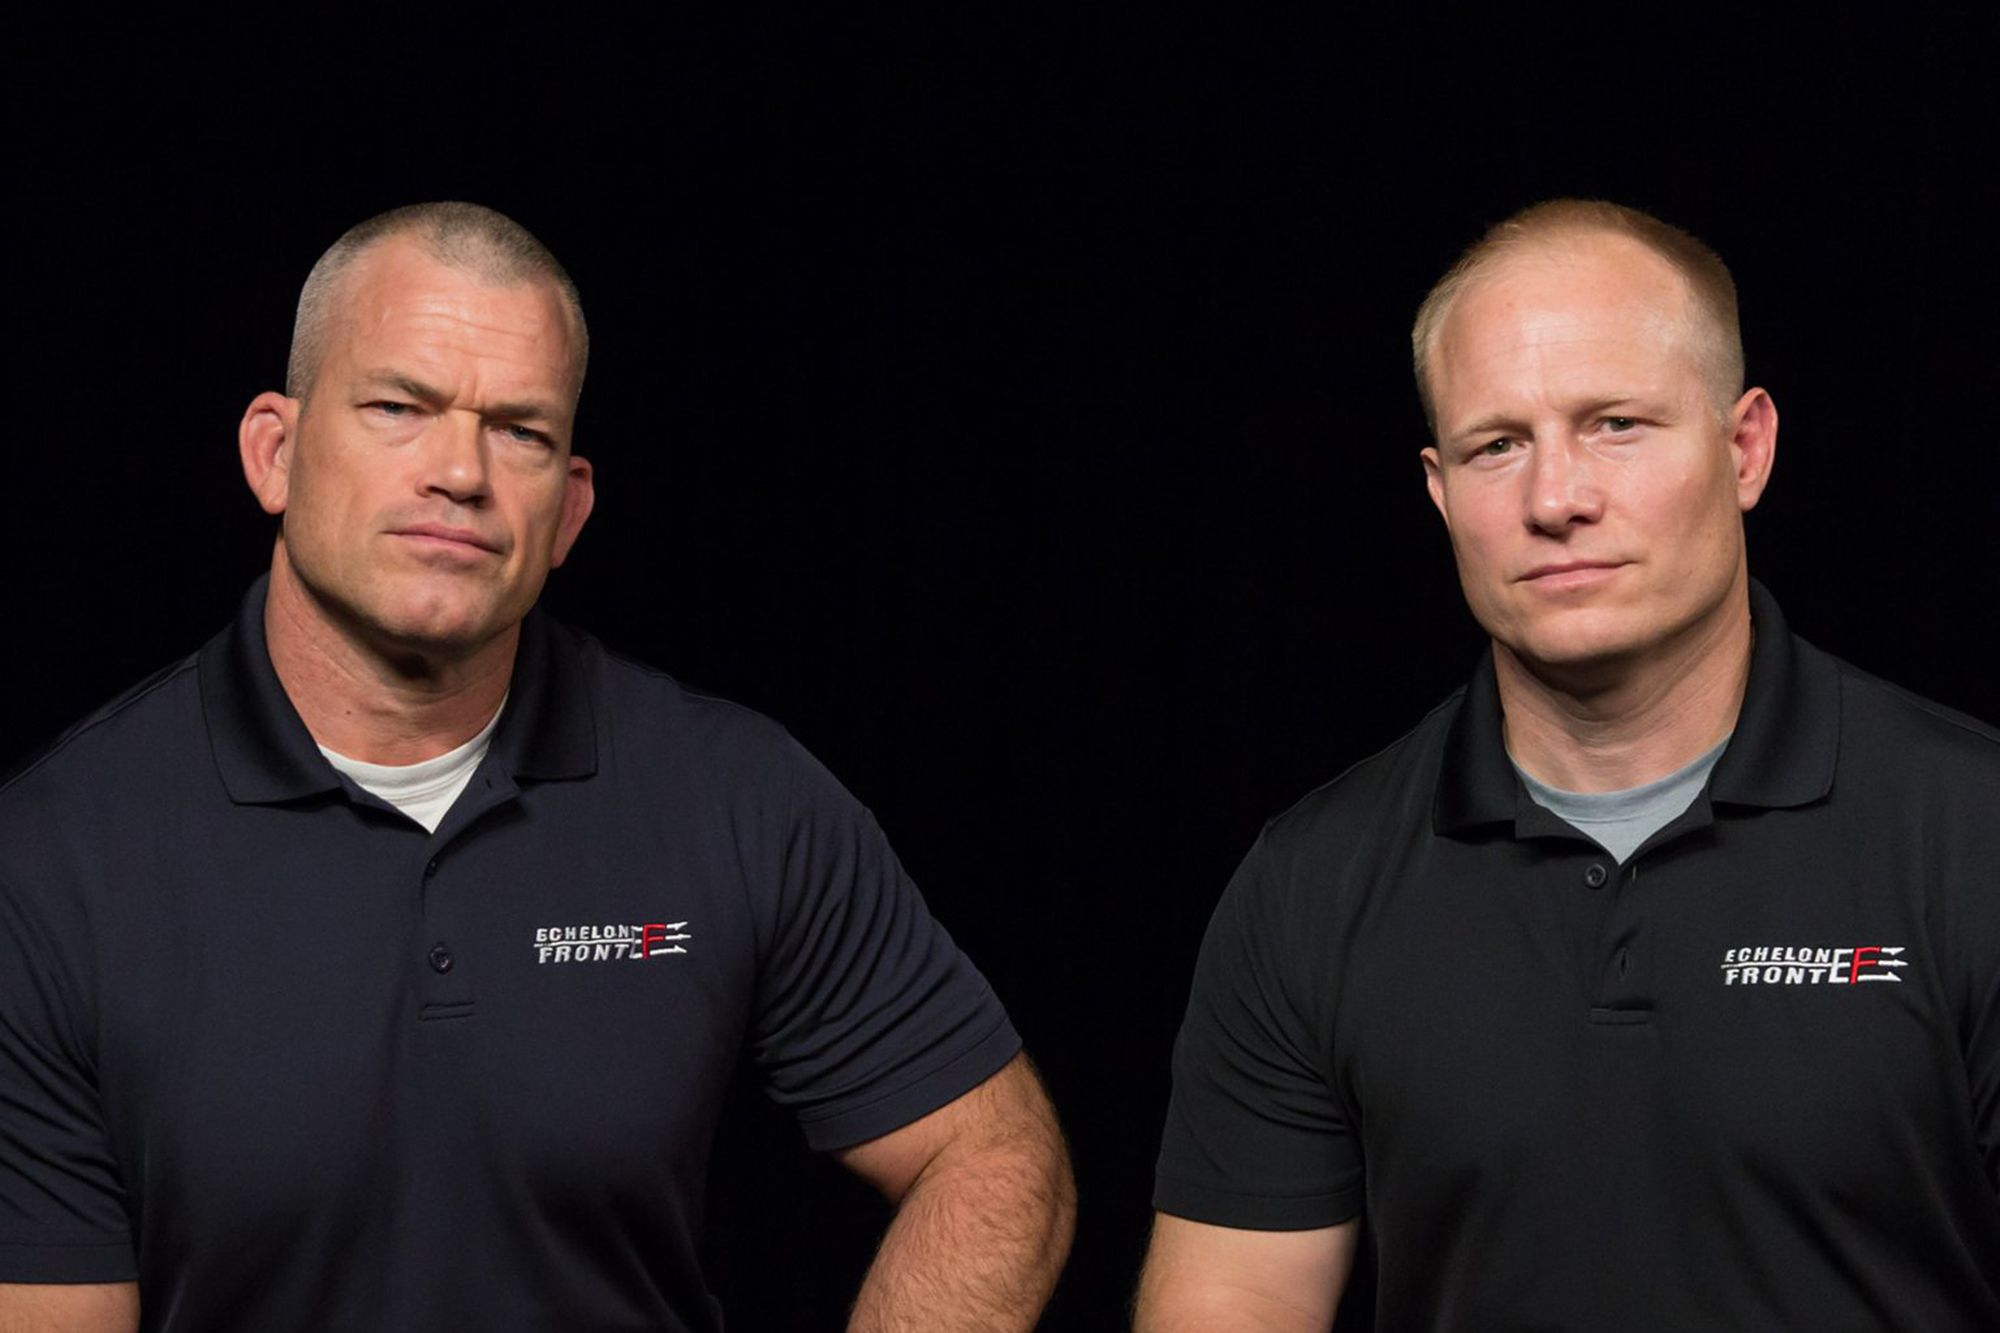 Former Navy SEAL Commanders Say New Leaders Always Make the Same 2 Mistakes